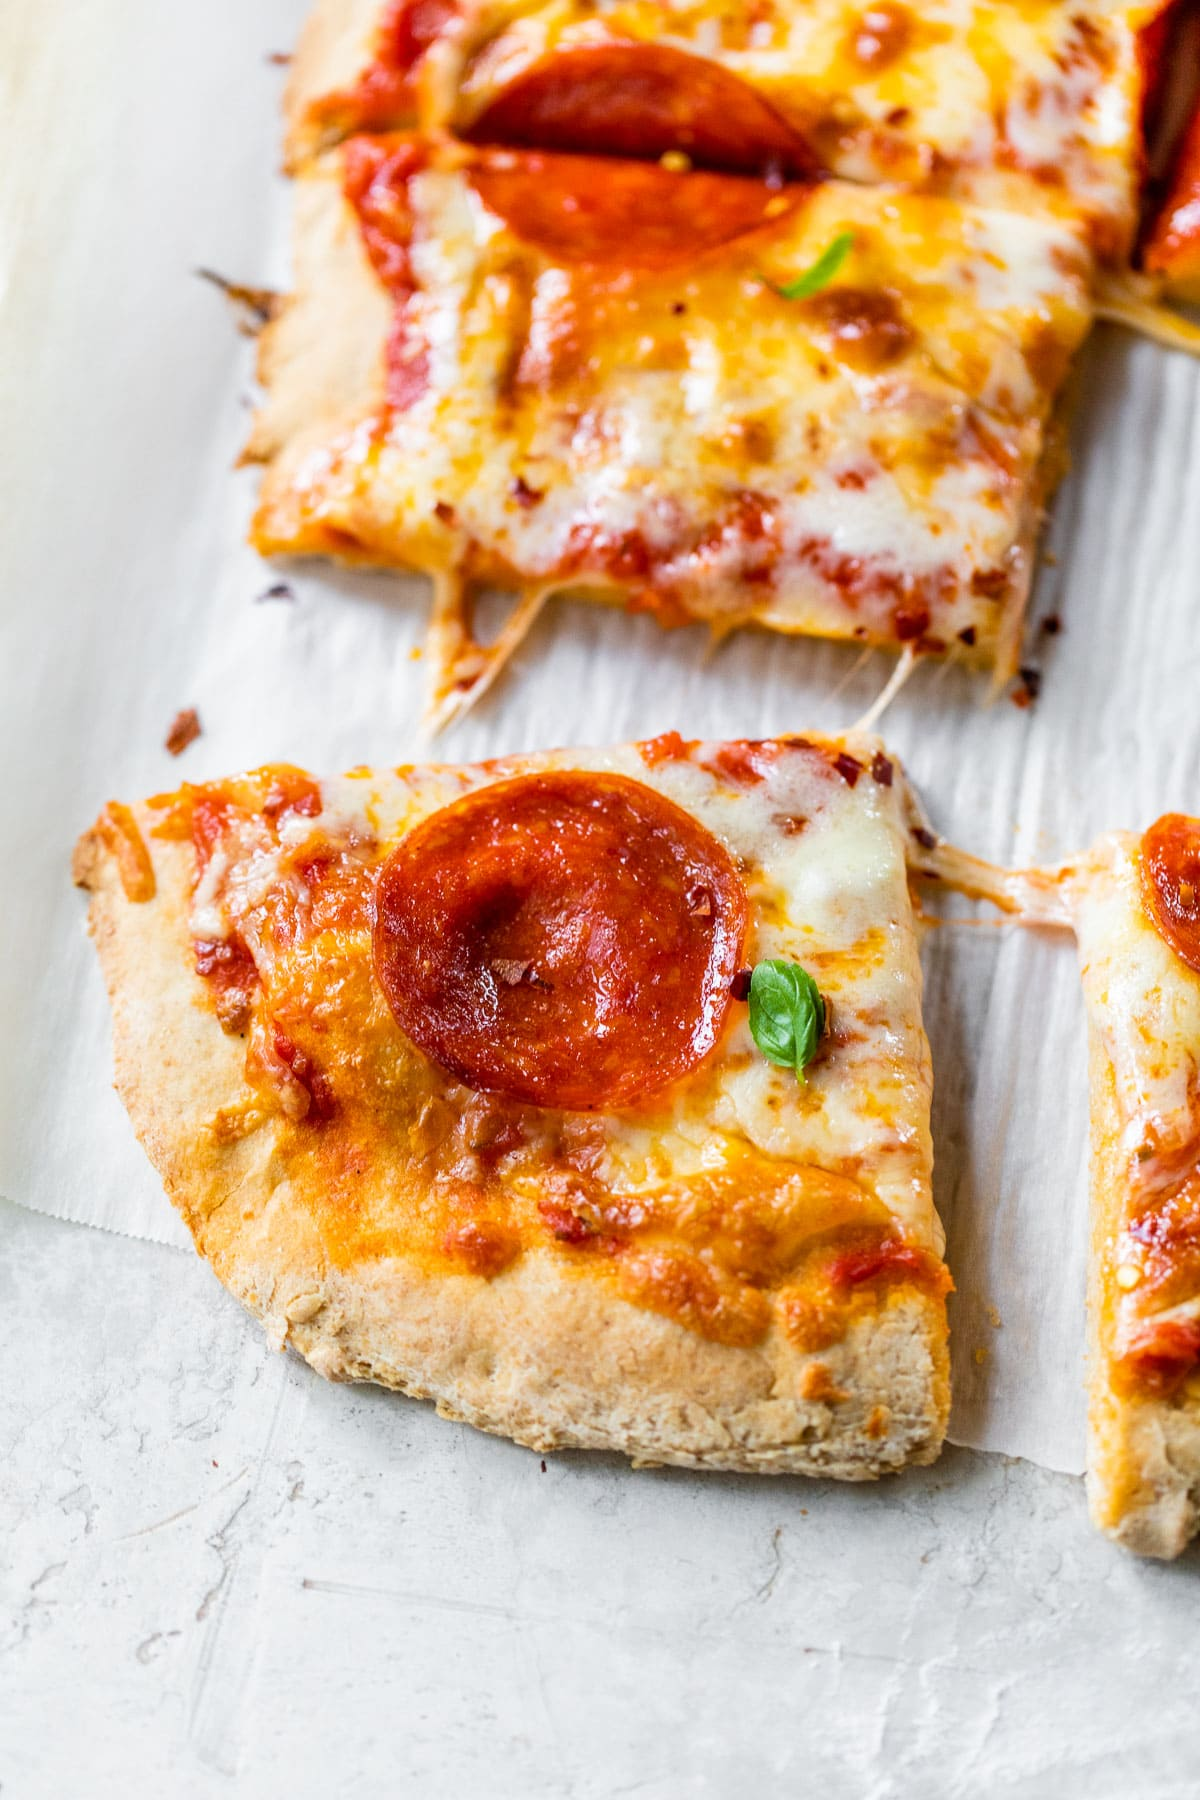 Homemade Whole Wheat Pizza Crust. An easy recipe for whole wheat pizza dough that anyone can make